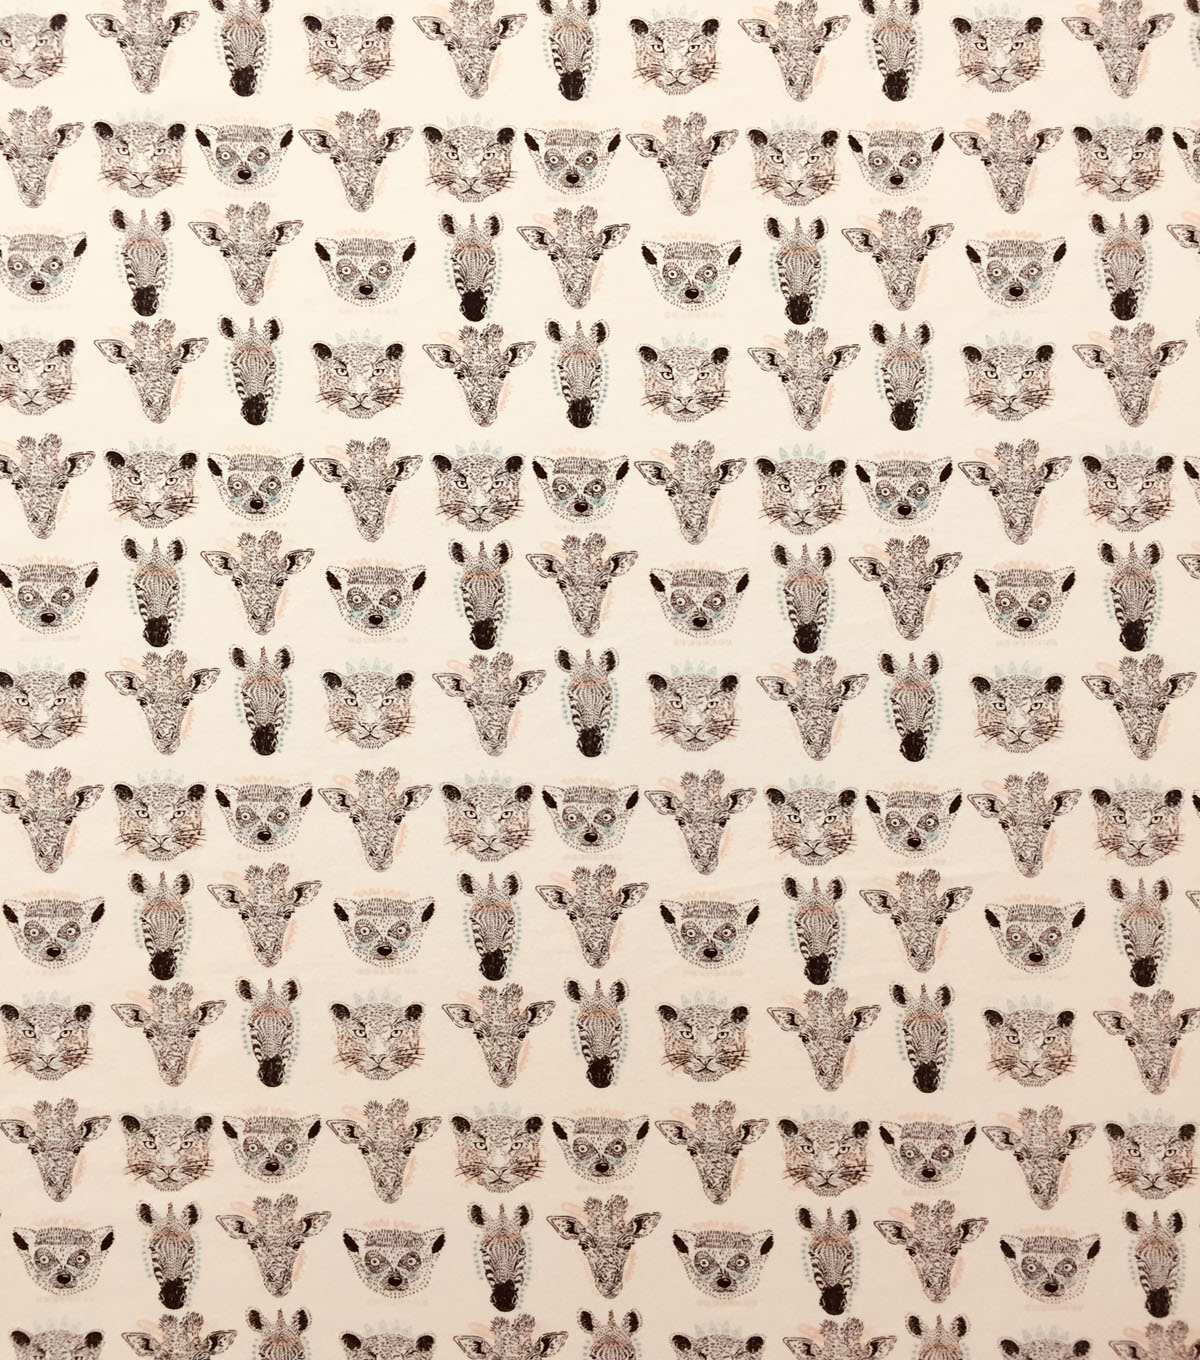 Doodles Juvenile Apparel Fabric-Jungle Animal Heads on Pink